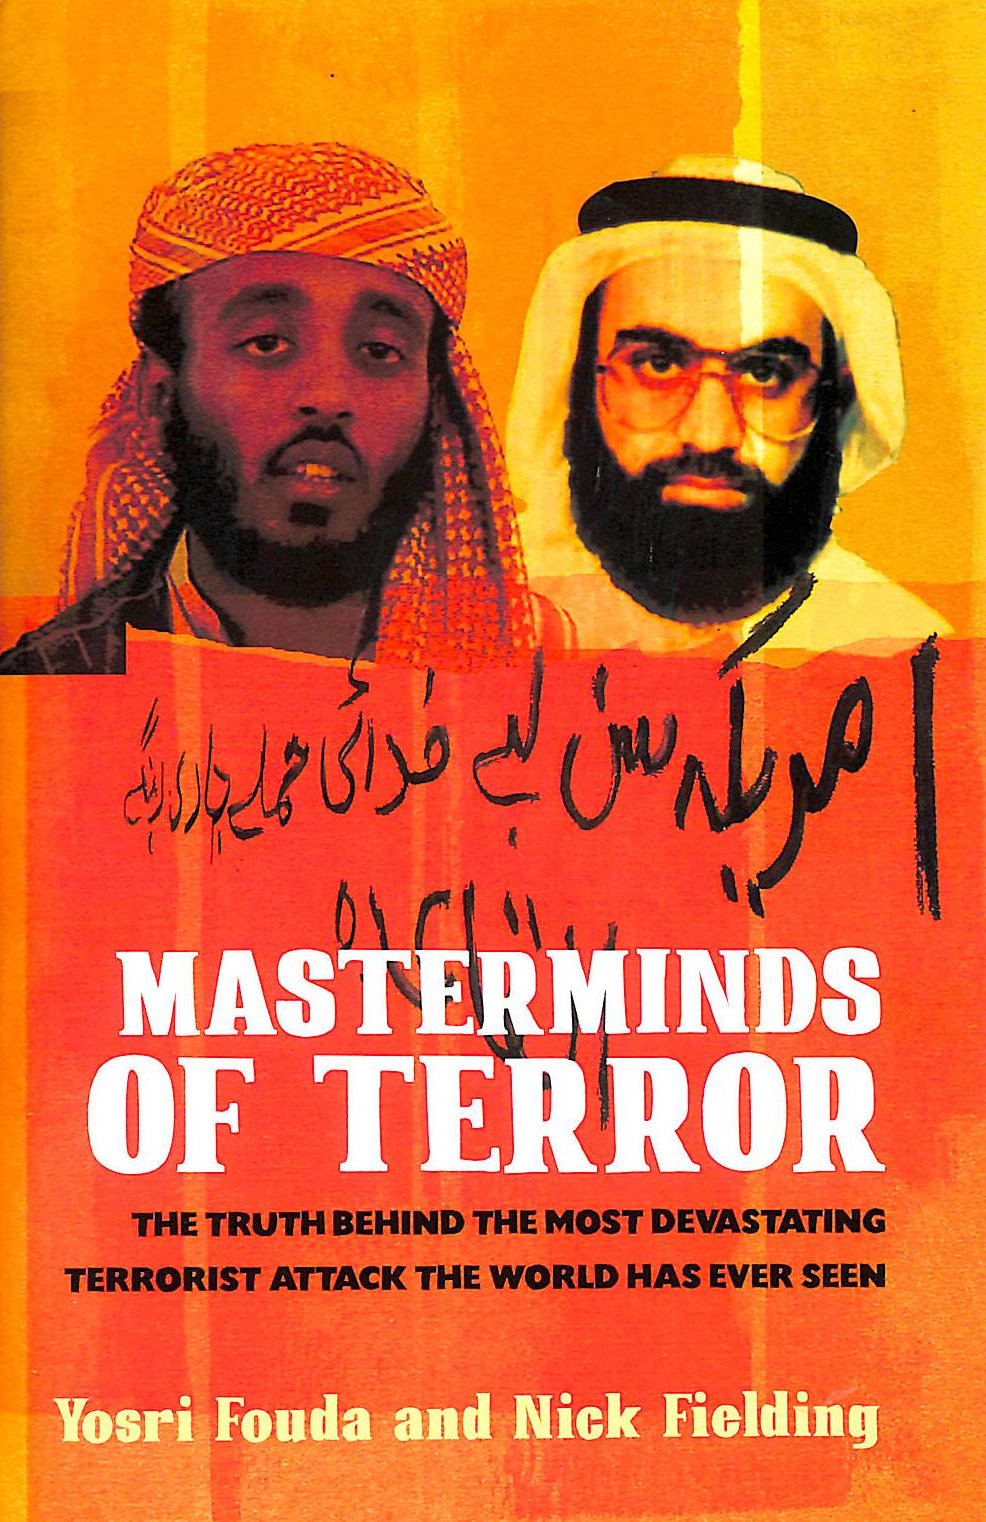 Image for Masterminds Of Terror: The Truth Behind The Most Devasting Terrorist Attack The World Has Ever Seen